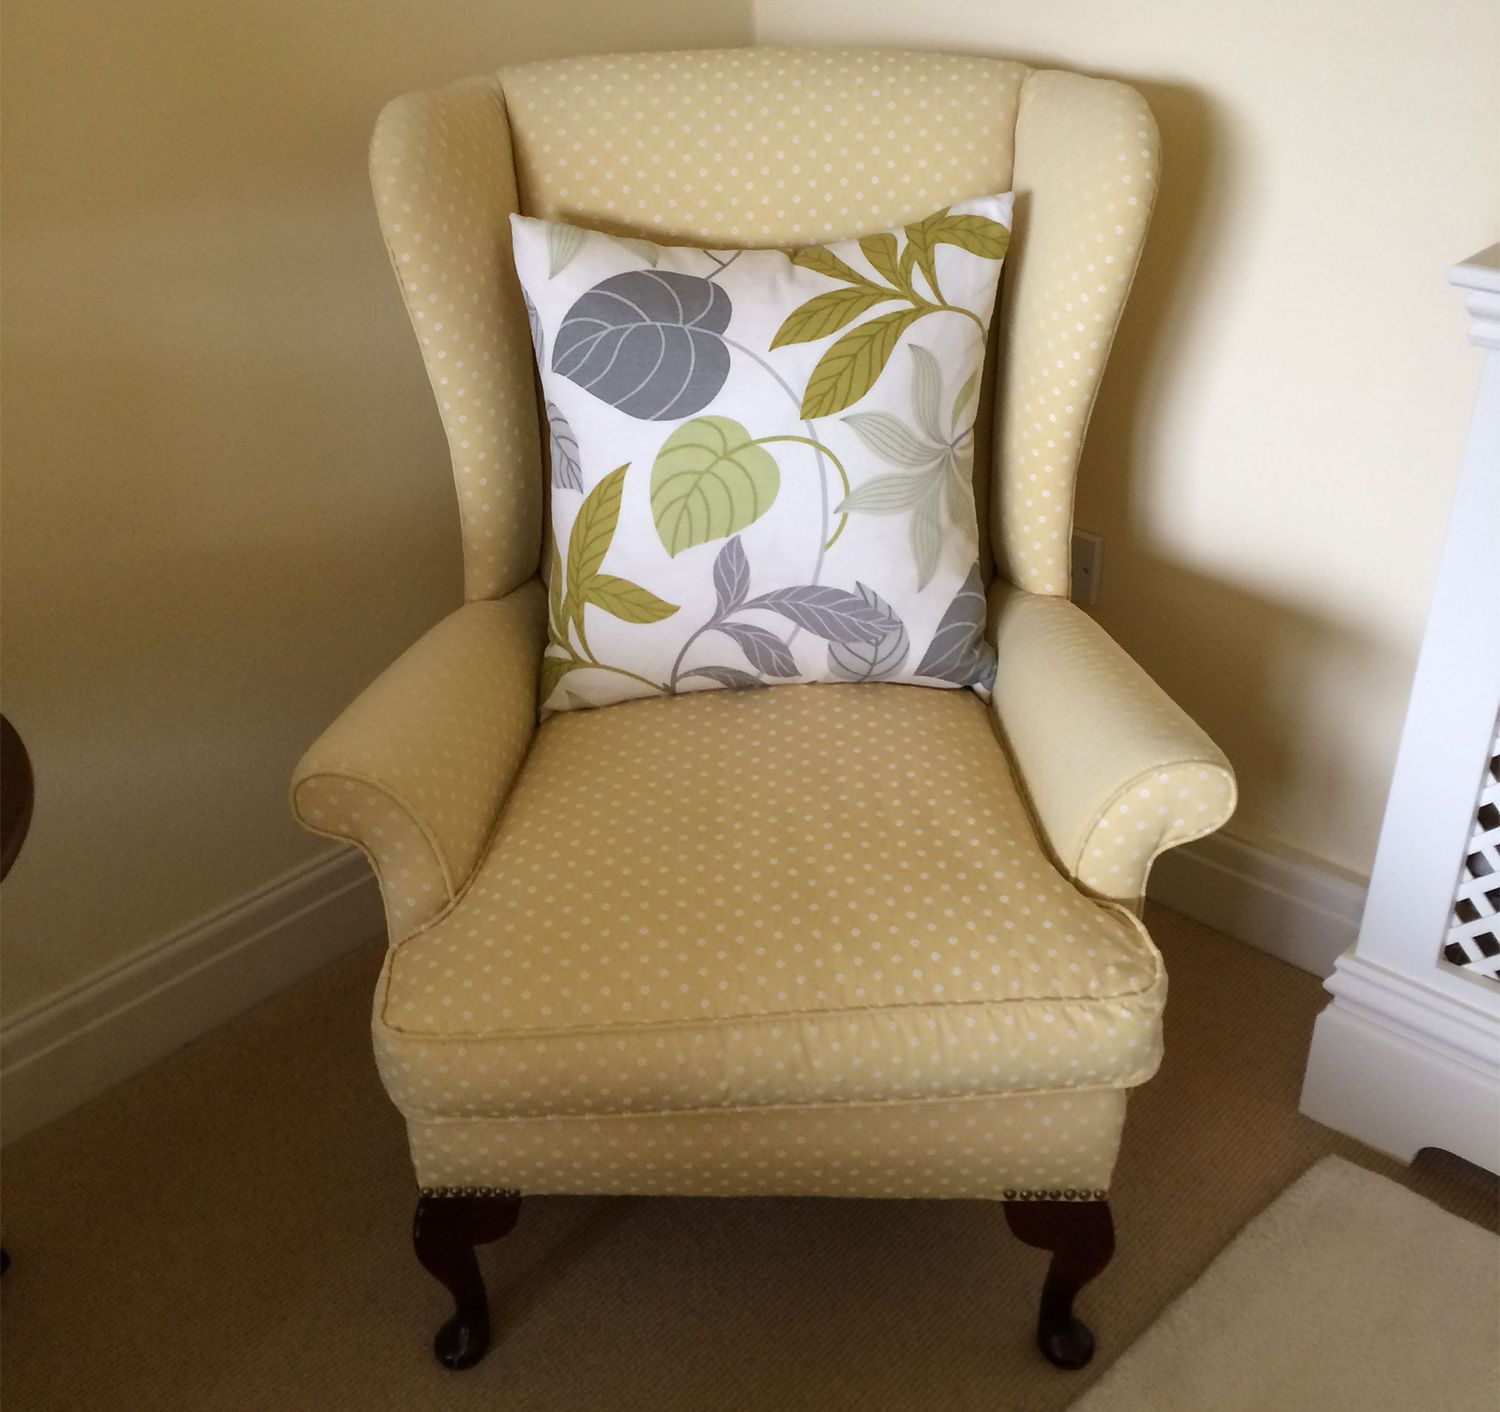 A photo of the wing chair in a yellow fabric before it was reupholstered.